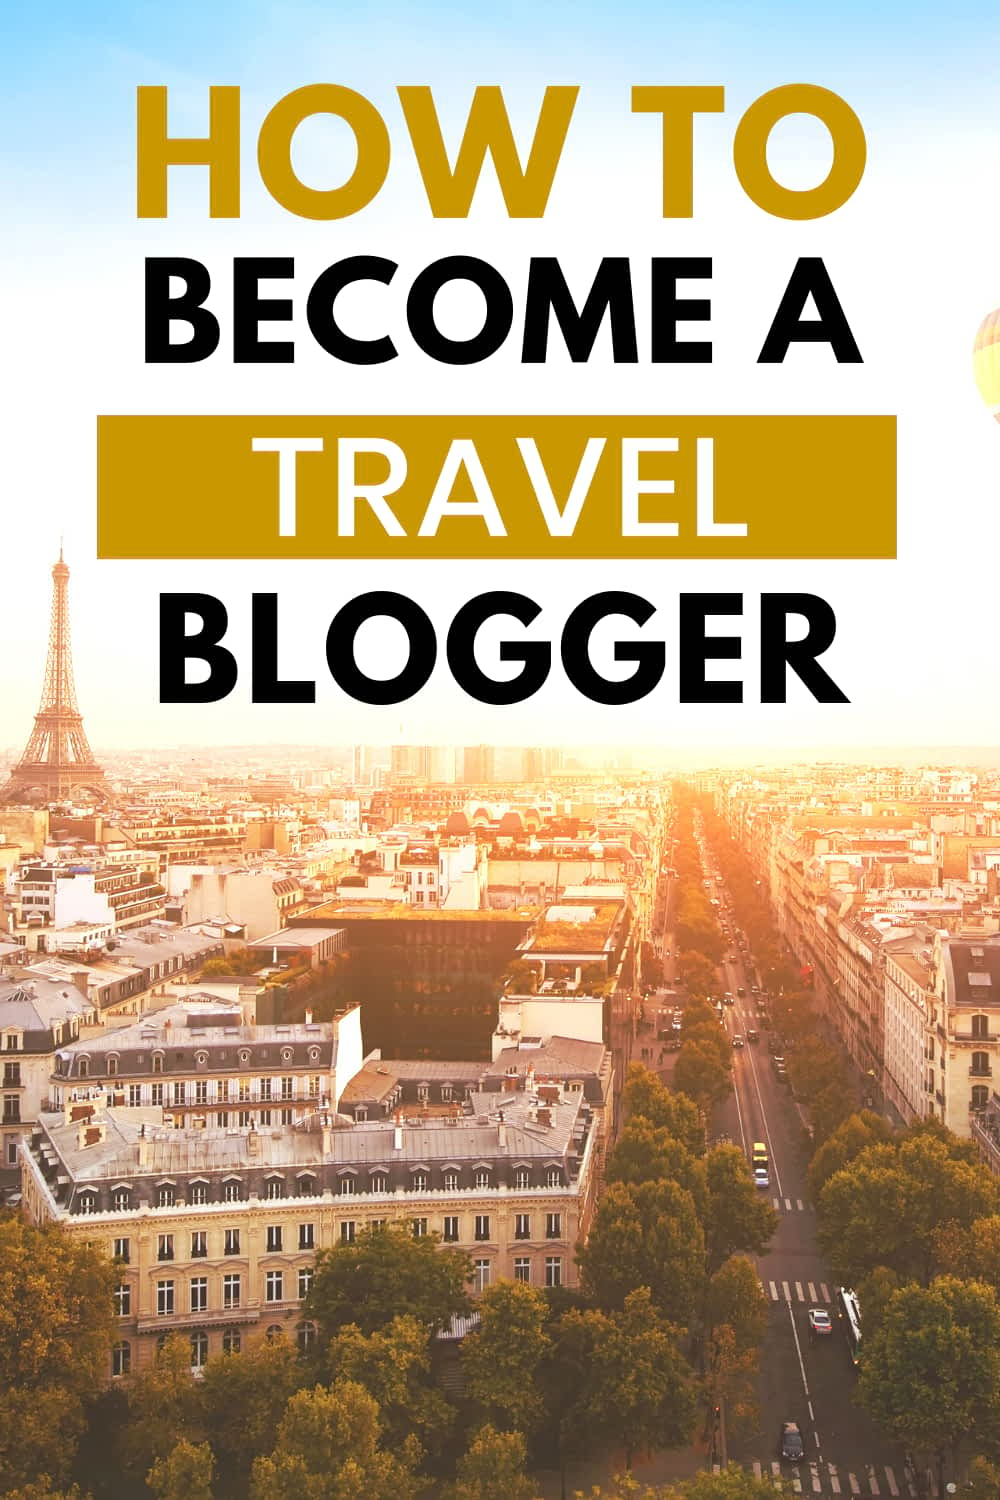 Start your own money making Travel Blog today! How to start a blog and make money, Starting a blog for beginners, Blogging for Beginners, Blogging Ideas & Tips, Make Money Blogging, Monetize your blog, Start a blog. #blogging #startablog #makemoneyblogging.